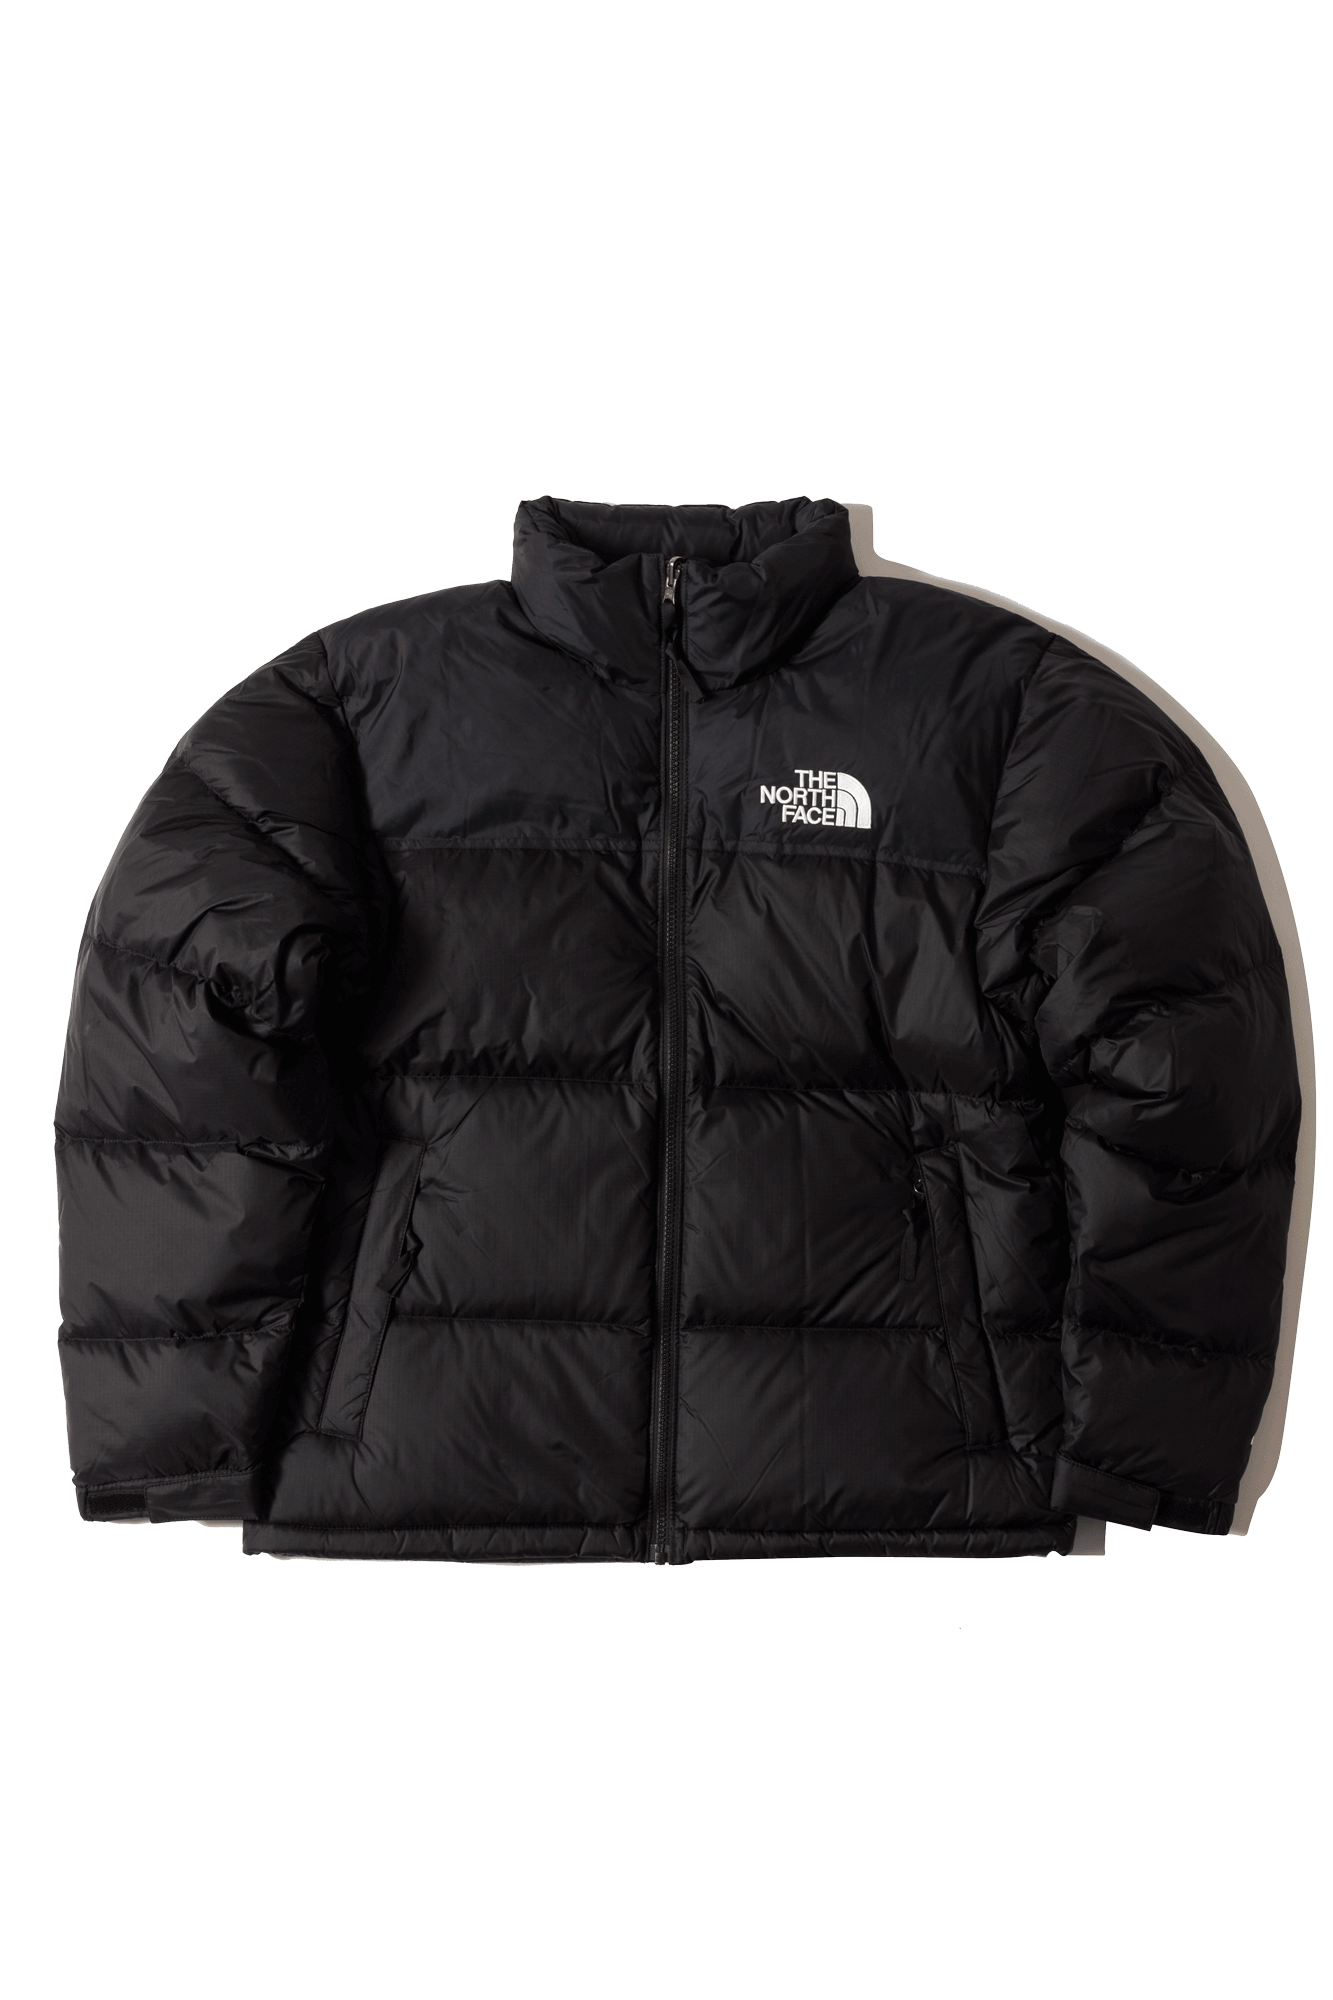 The North Face Coats & Jackets Men's 1996 Retro Nuptse Jacket Black T93C8DJK3#000#BLACK#XS - One Block Down